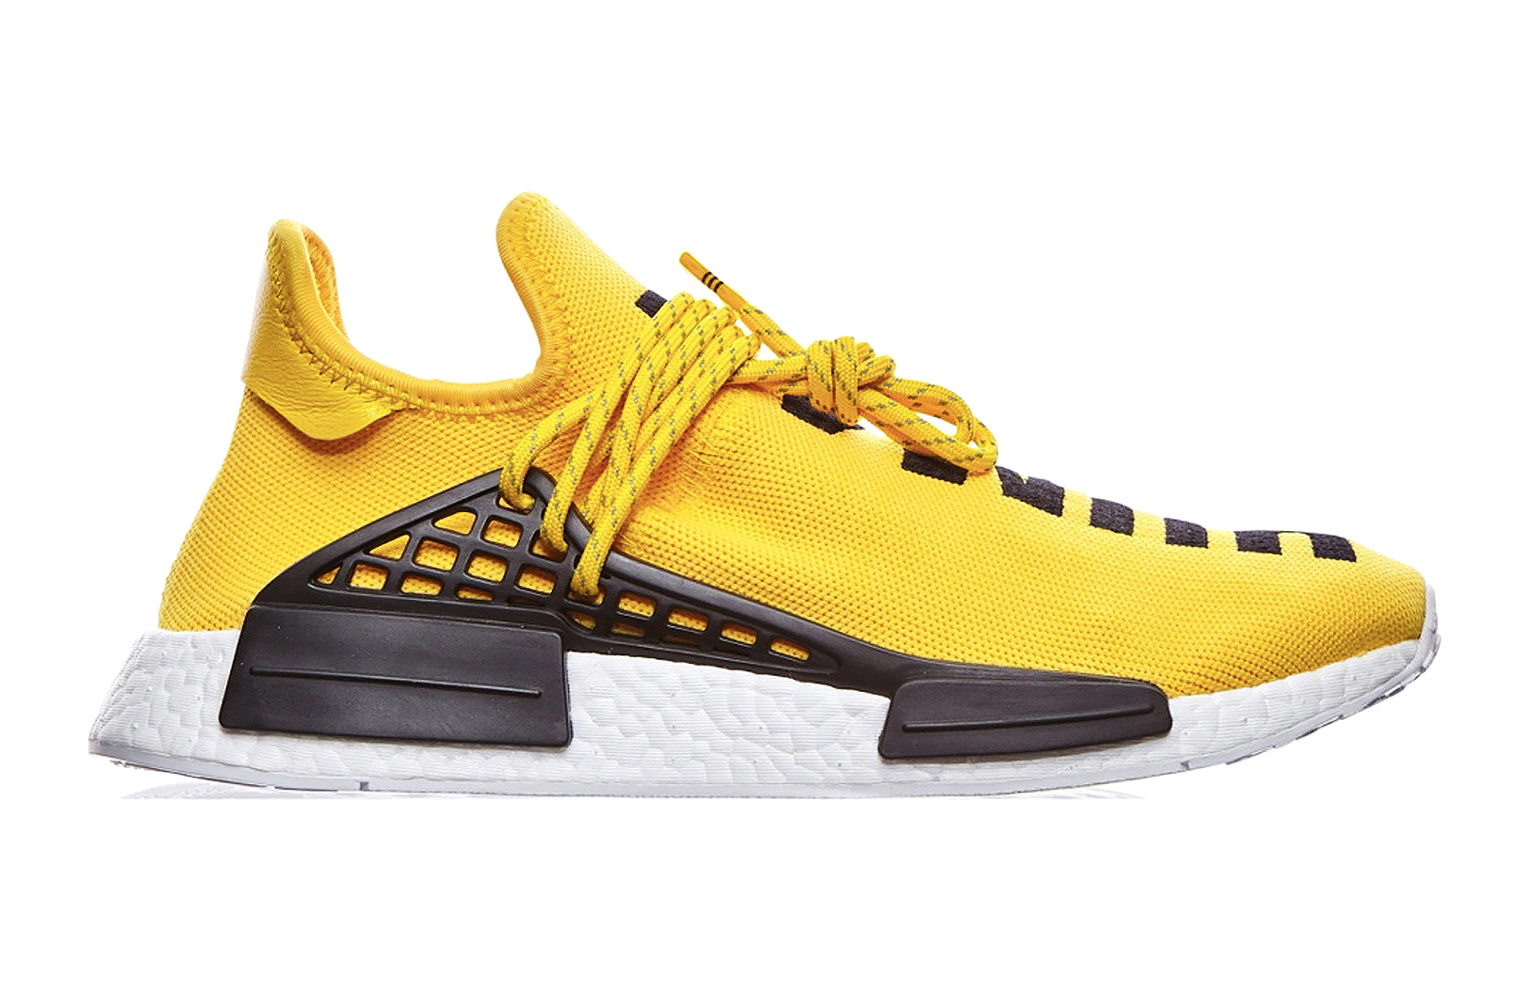 Adidas NMD HU x Pharrell Williams Yellow